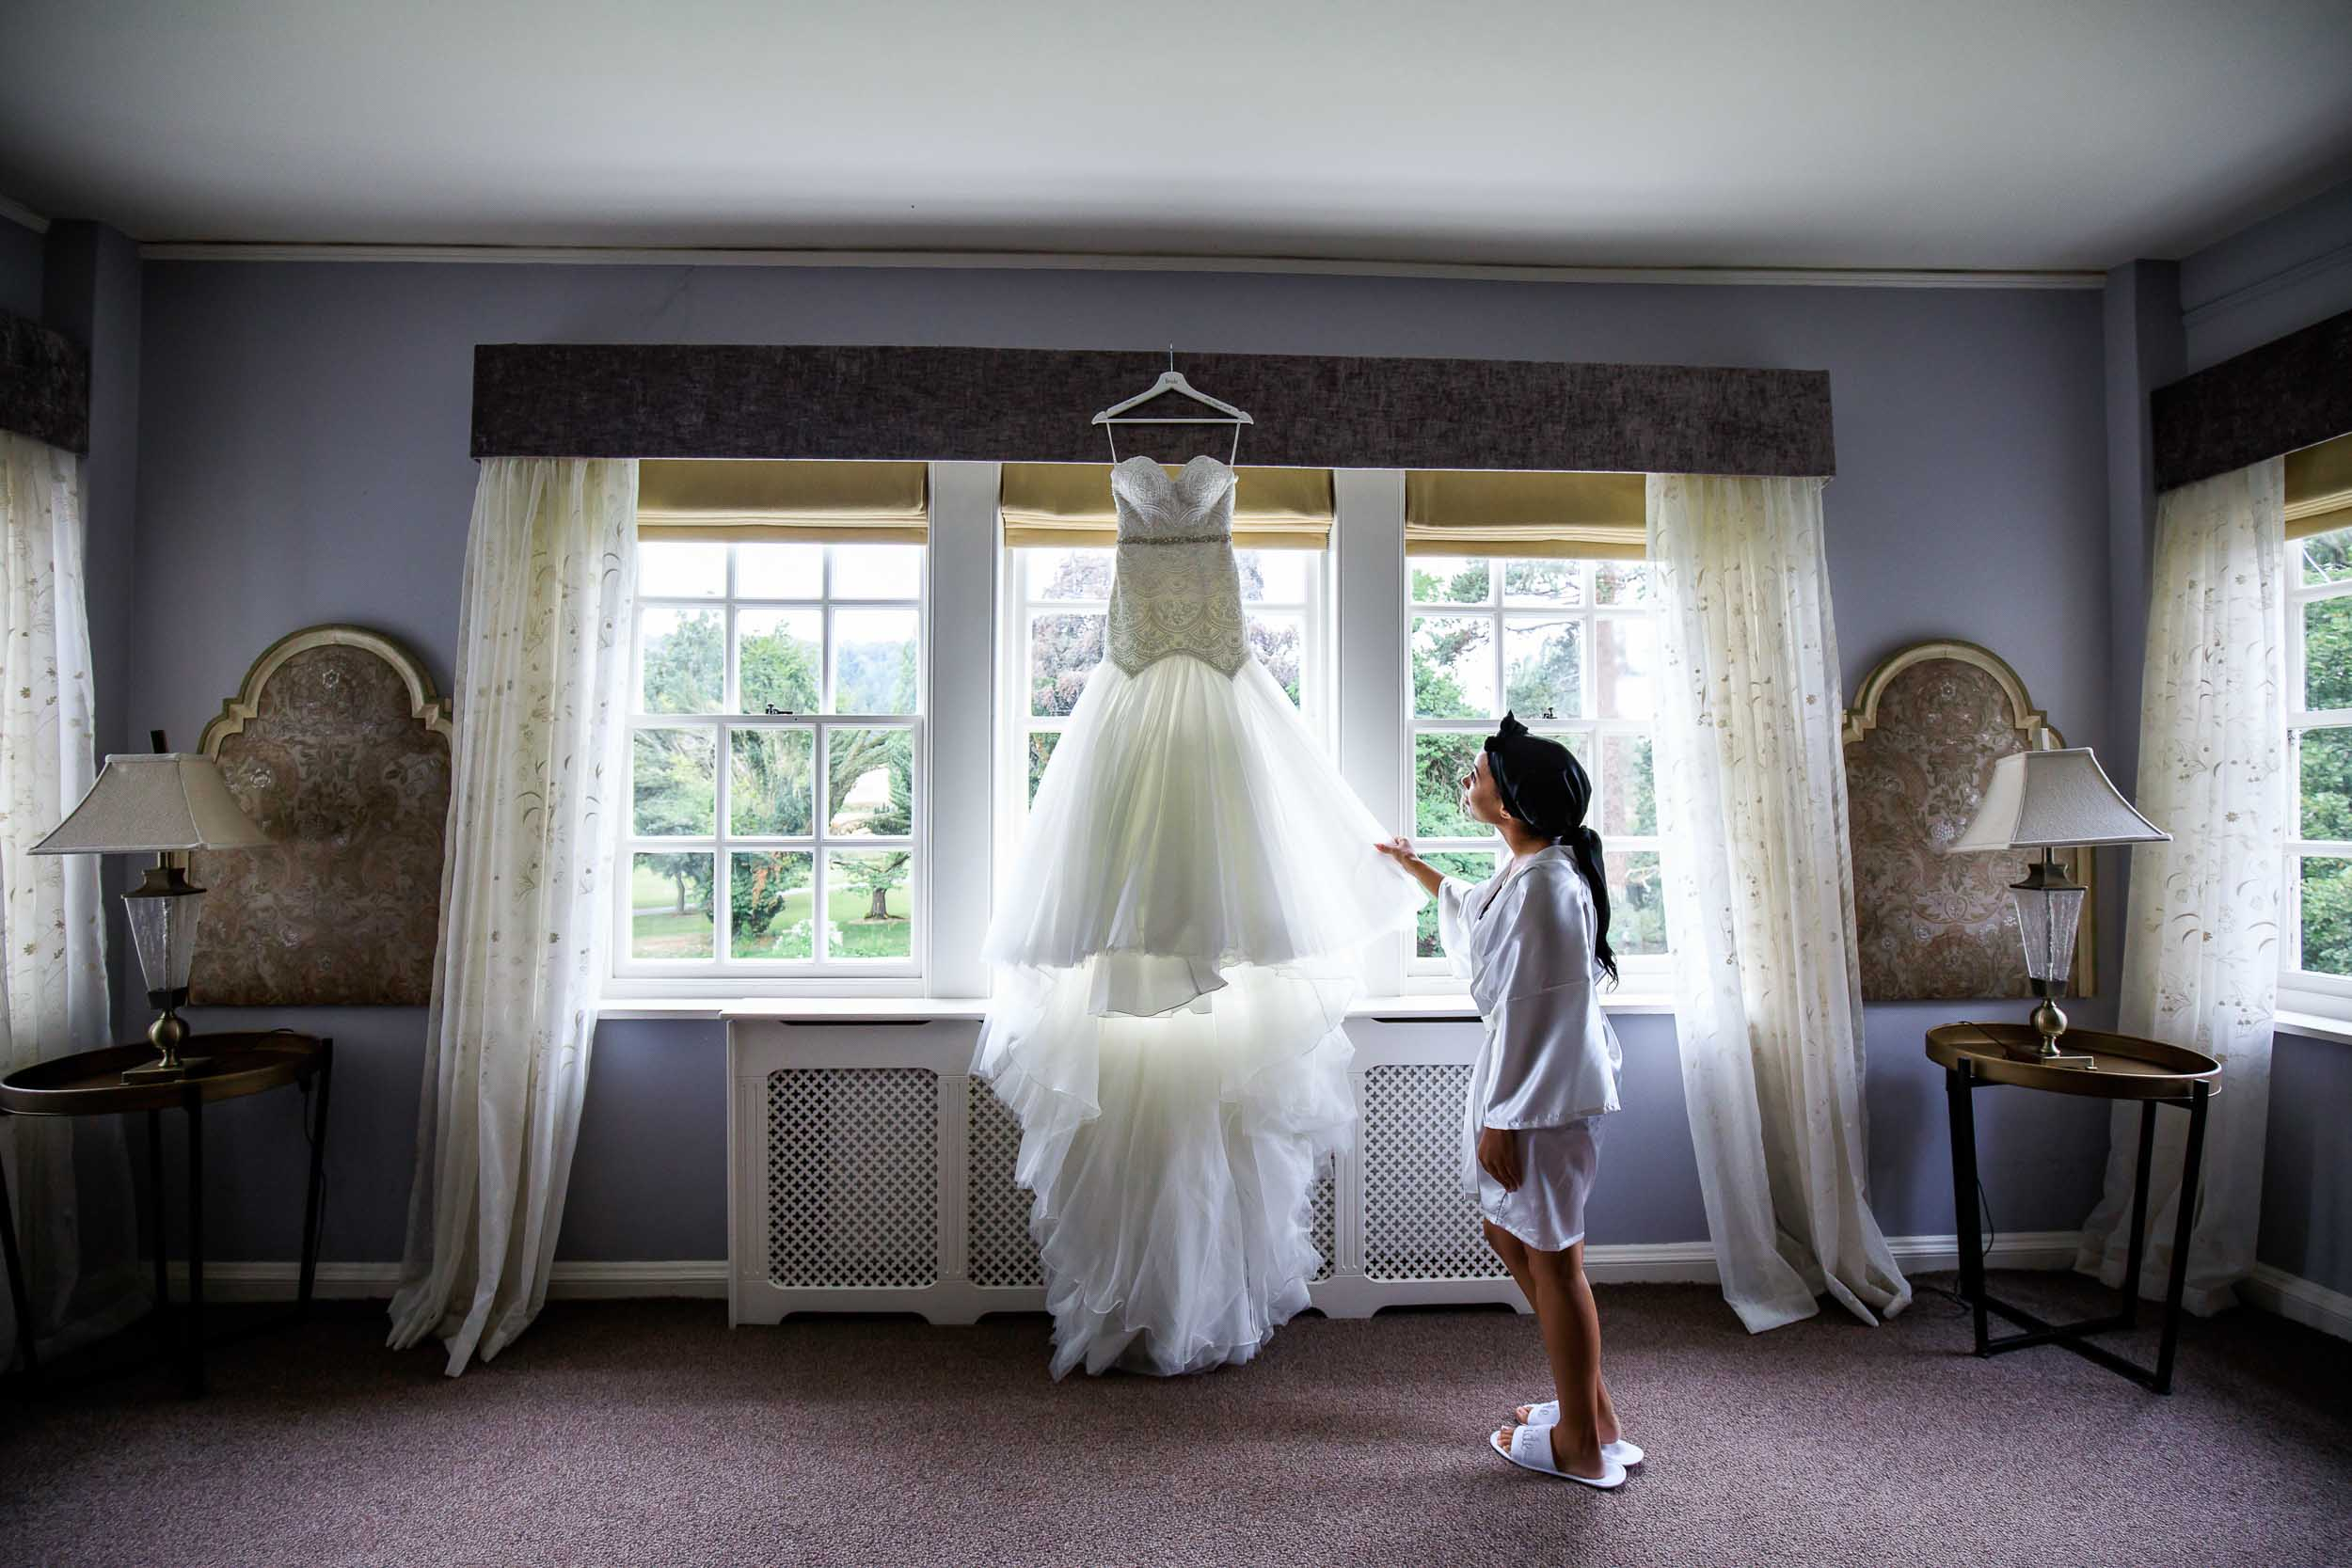 Brinsop Court Wedding, Herefordshire, United Kingdom